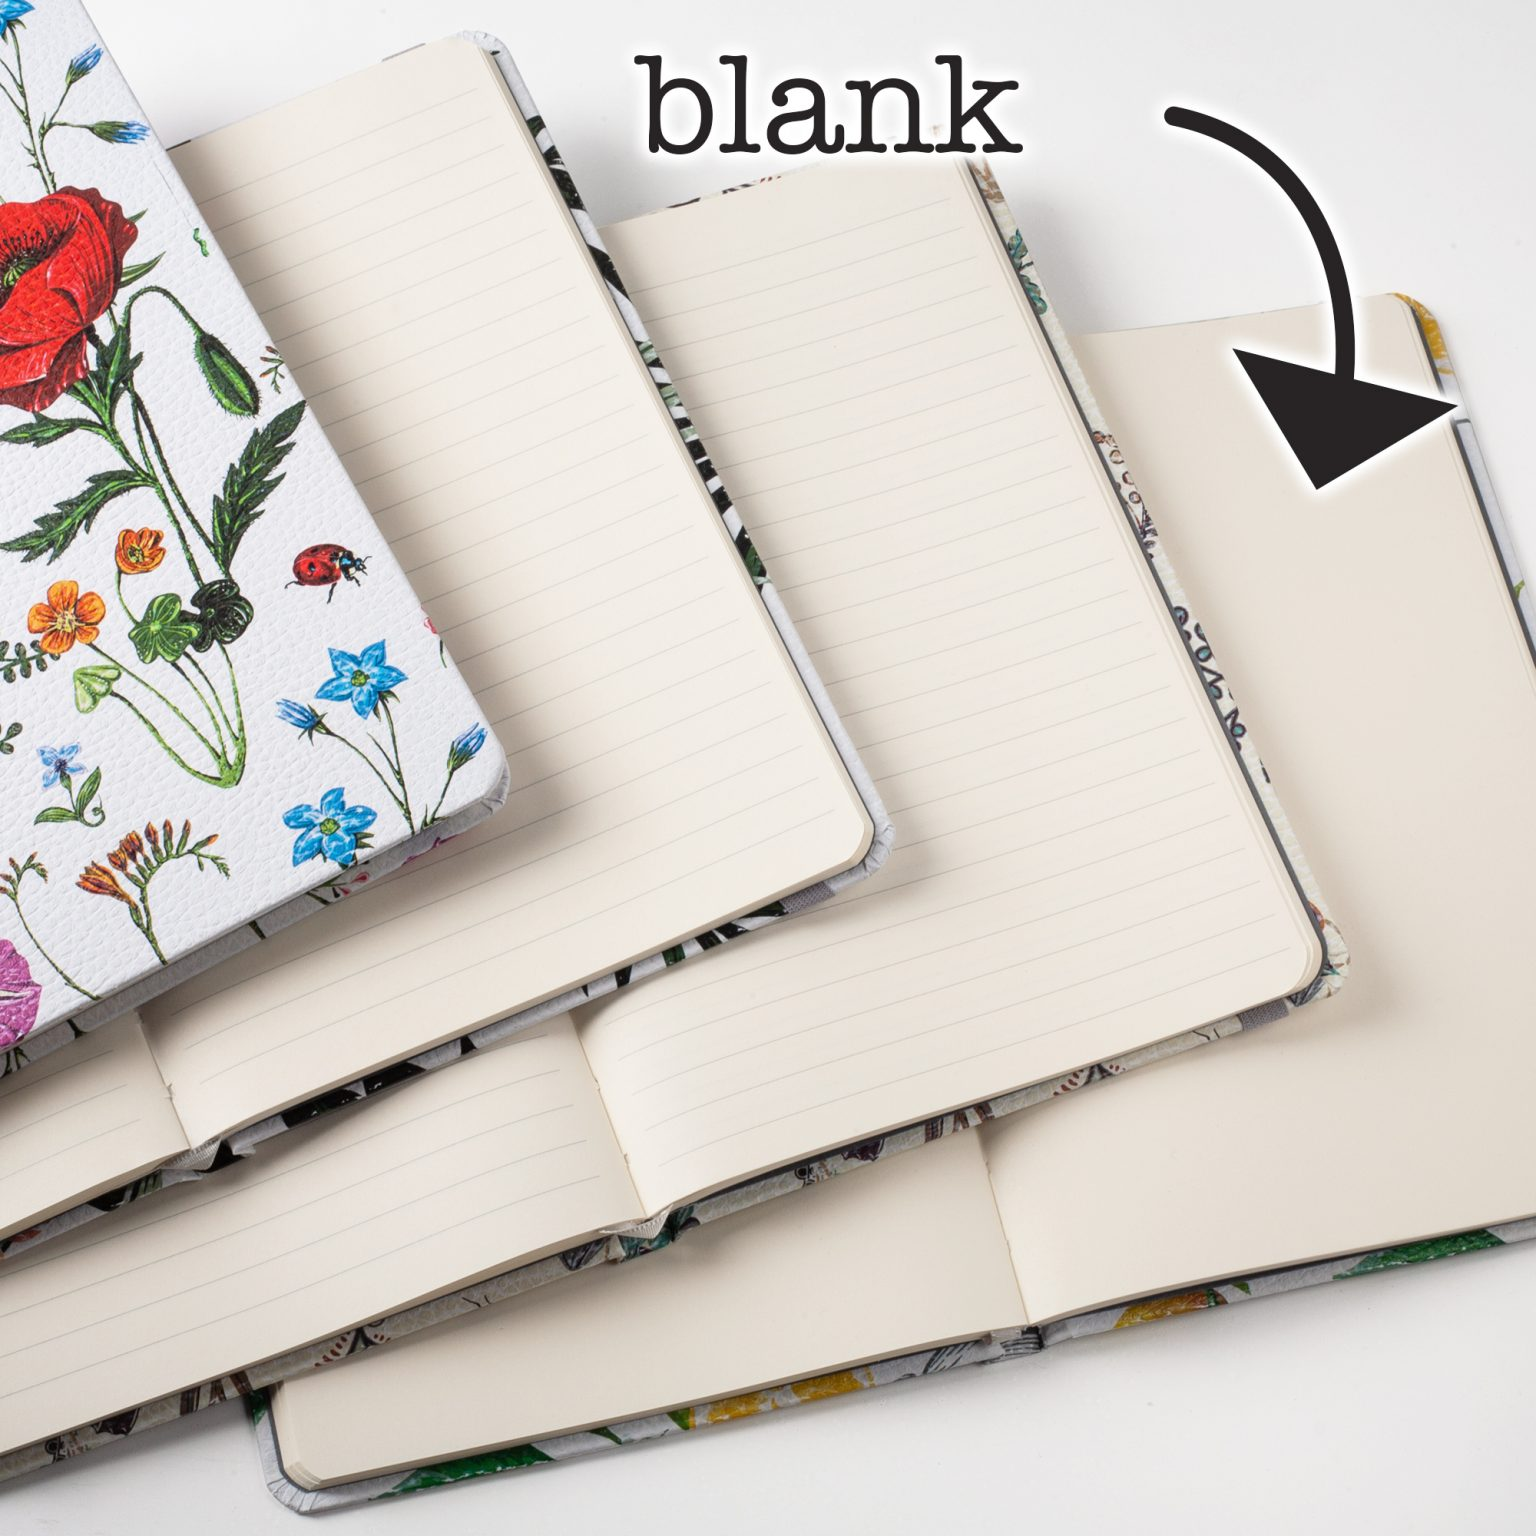 Image shows the inside of the floral hardcover journals